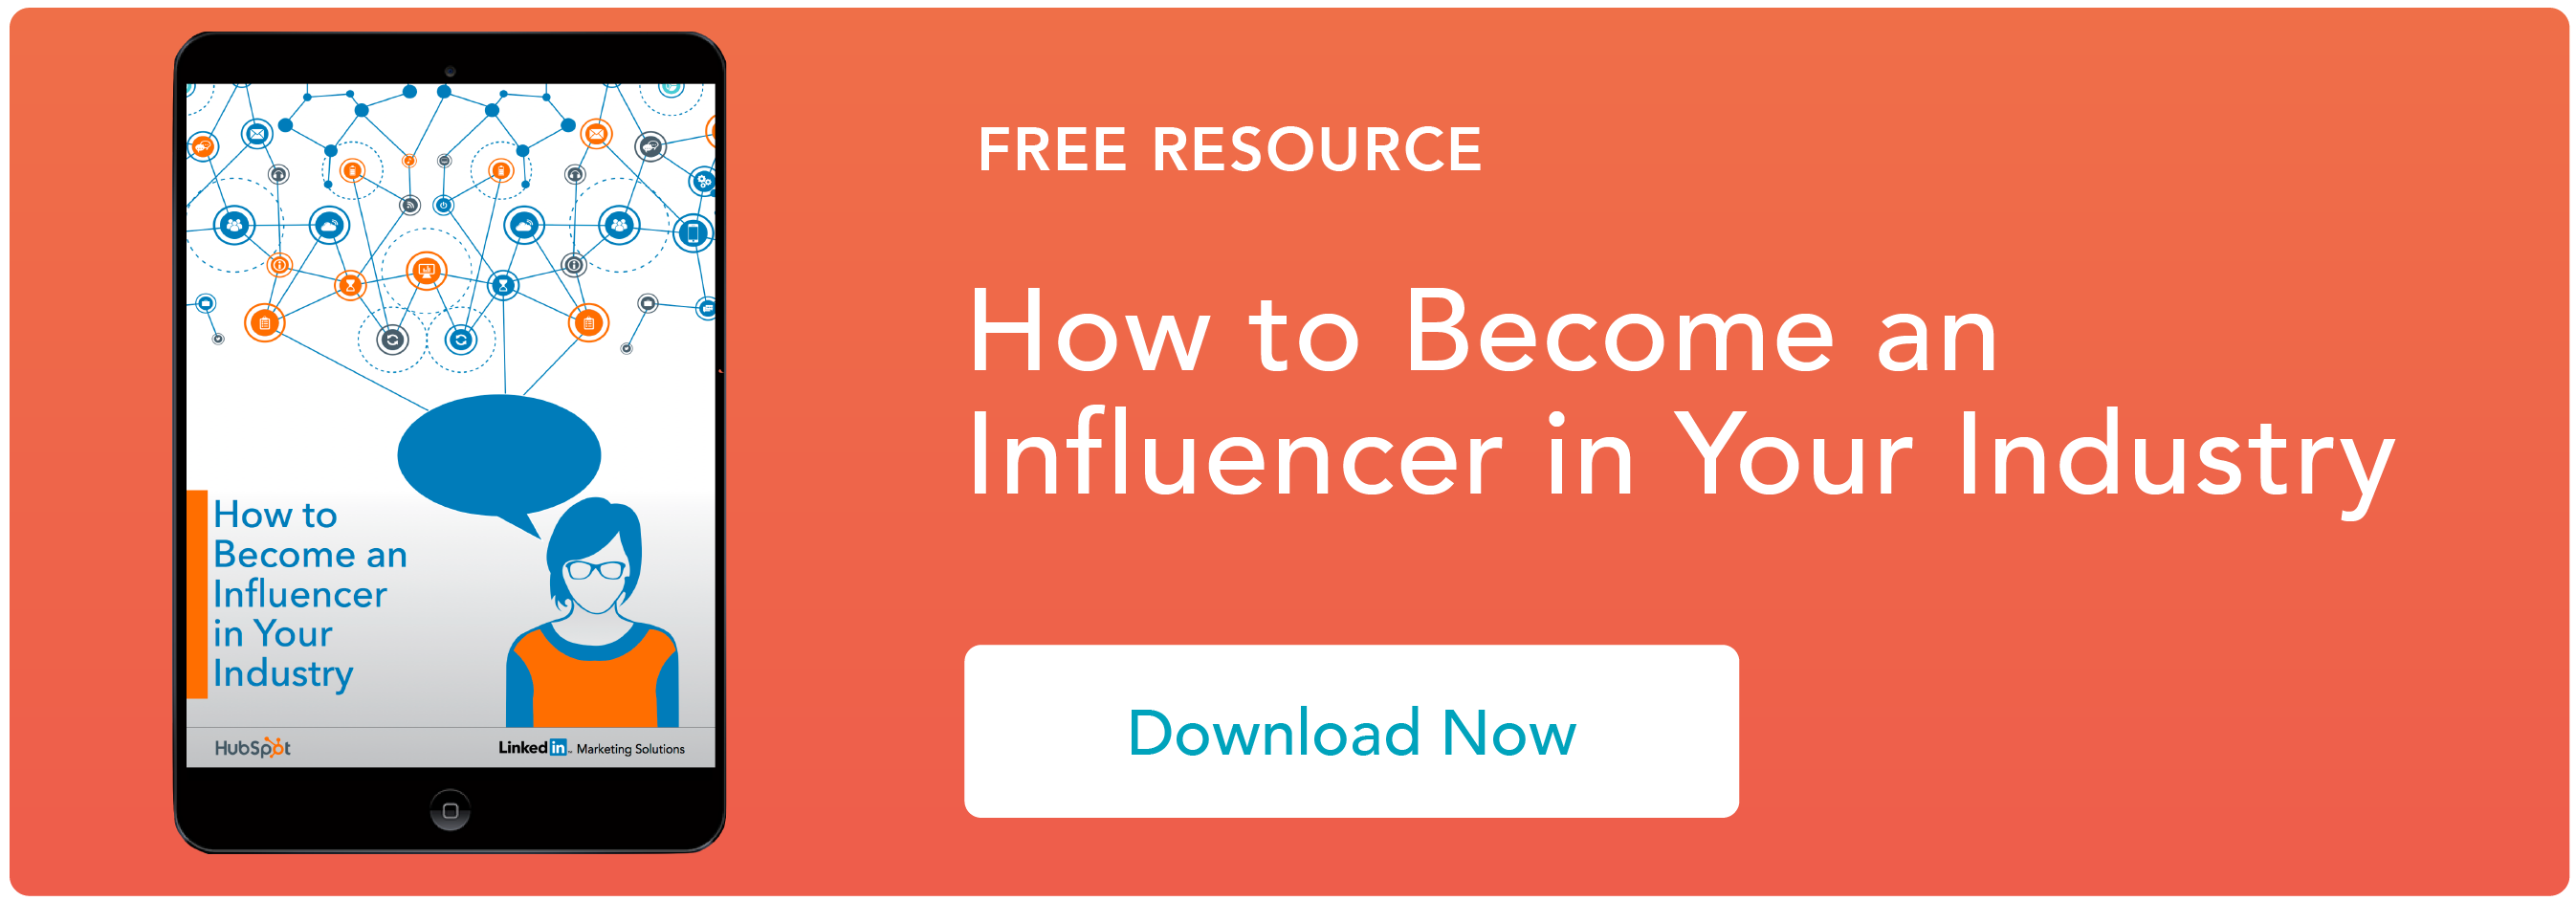 How to Become an Influencer in Your Industry Ebook